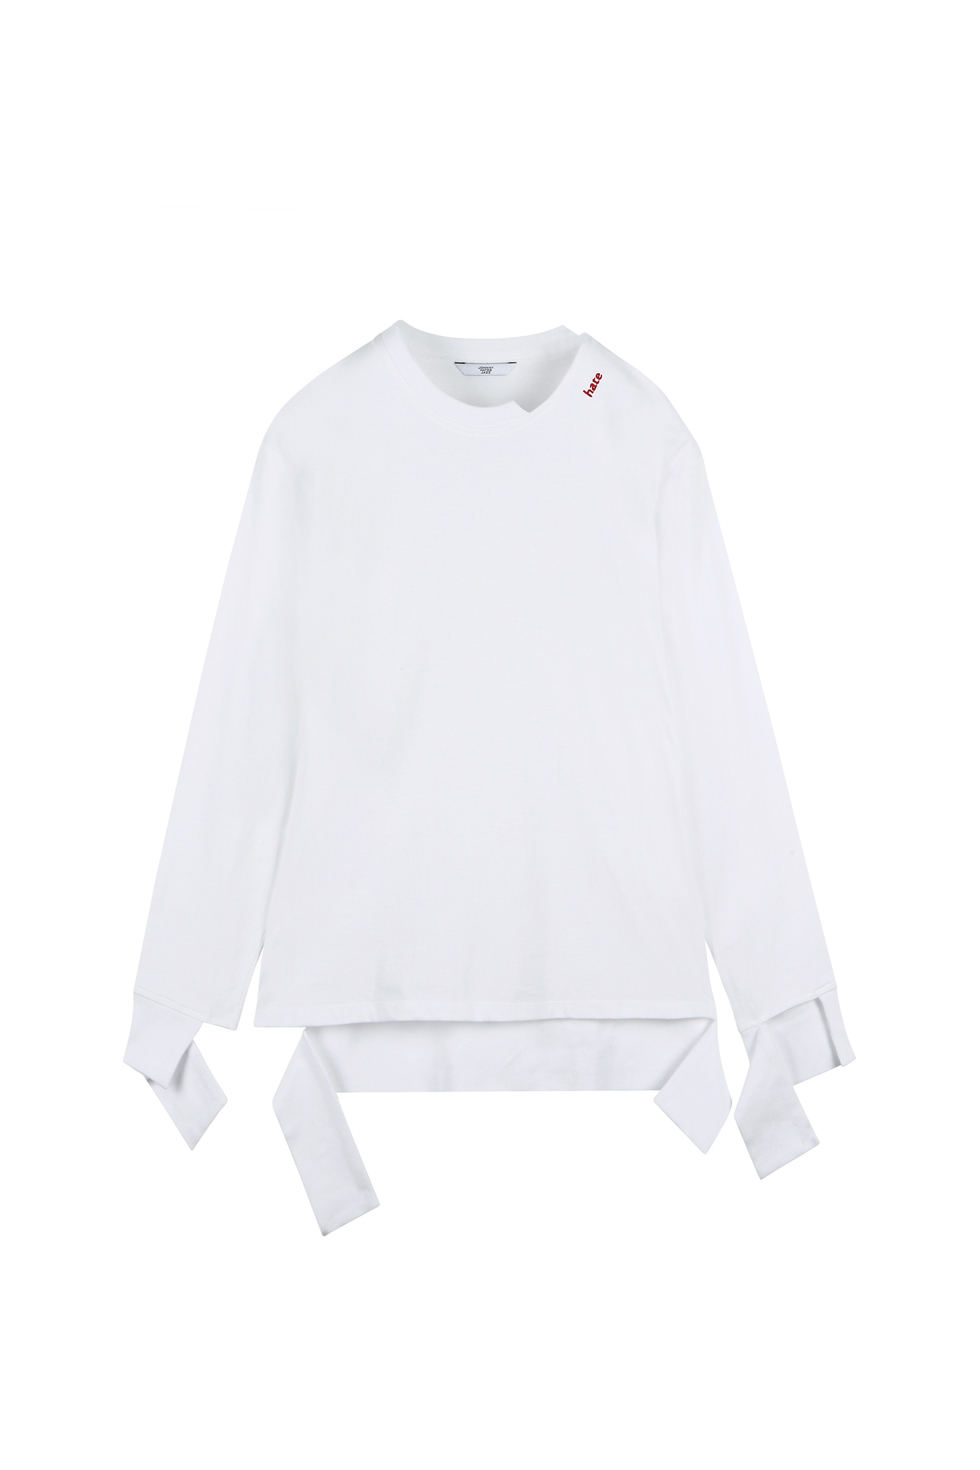 """HATE"" CUTTING LONG SLEEVES - WHITE"